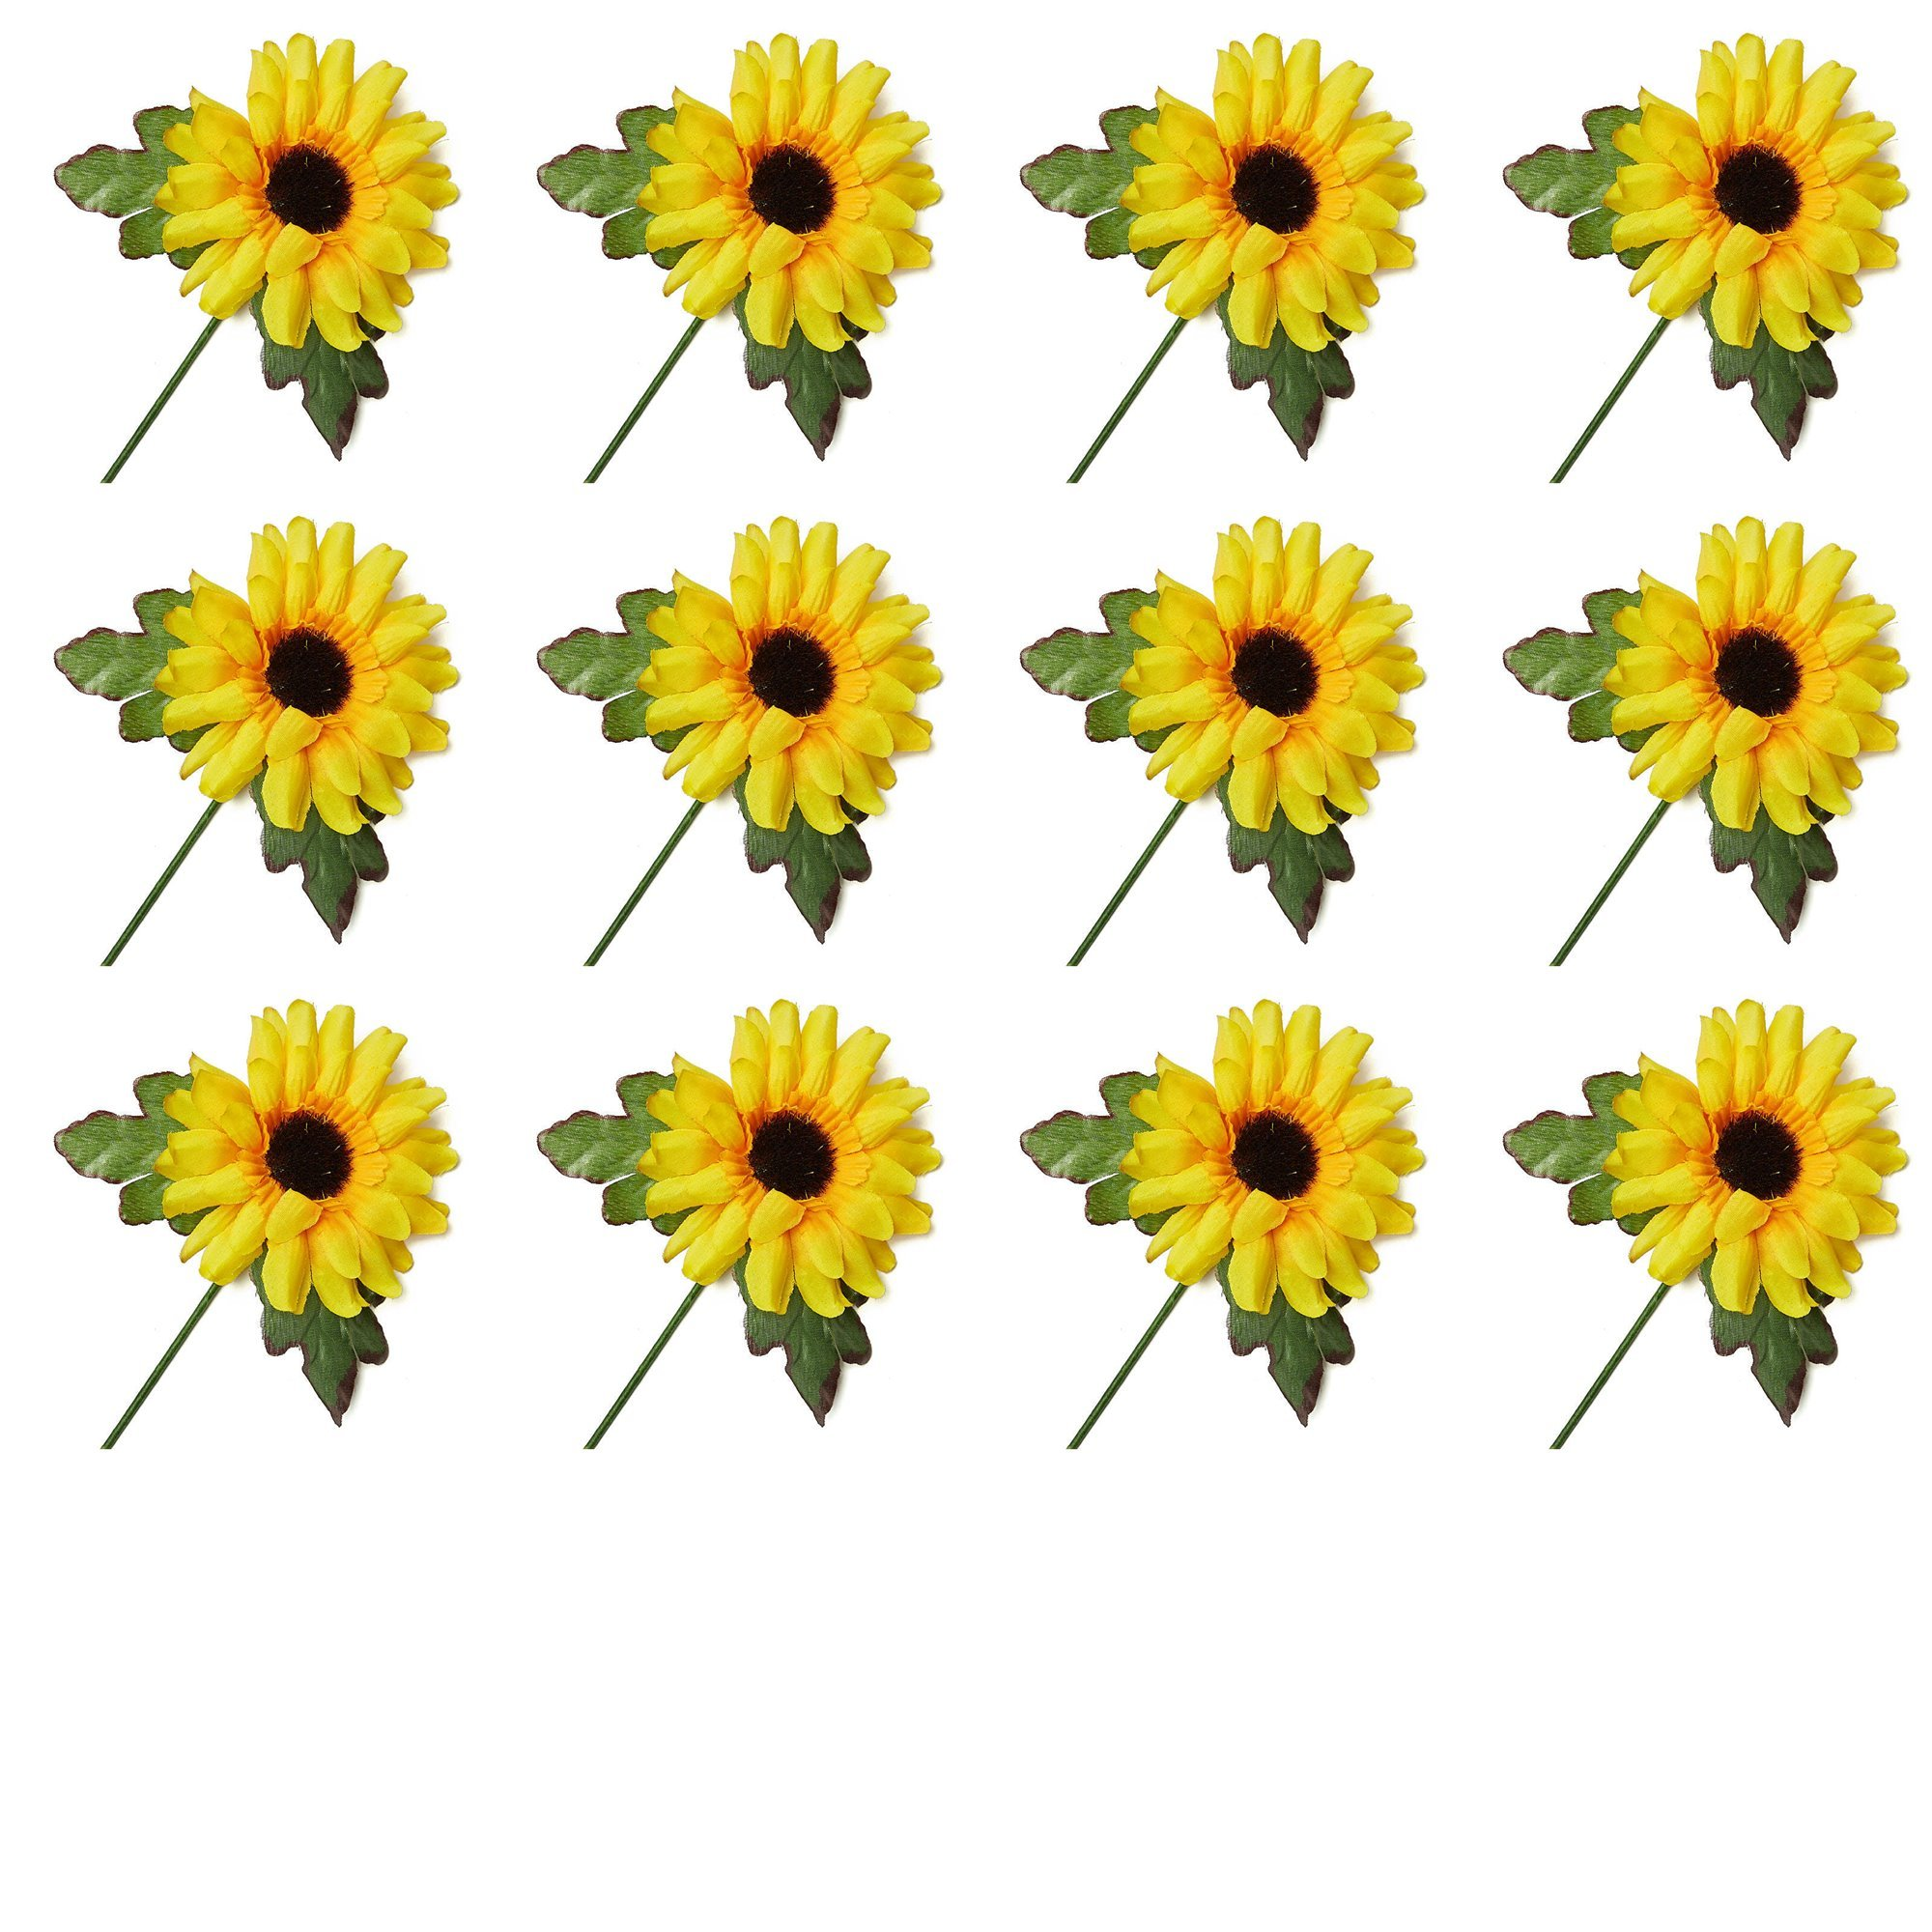 Factory Direct Craft Artificial Sunflower Floral Picks With Fuzzy Brown Centers (12 pack)